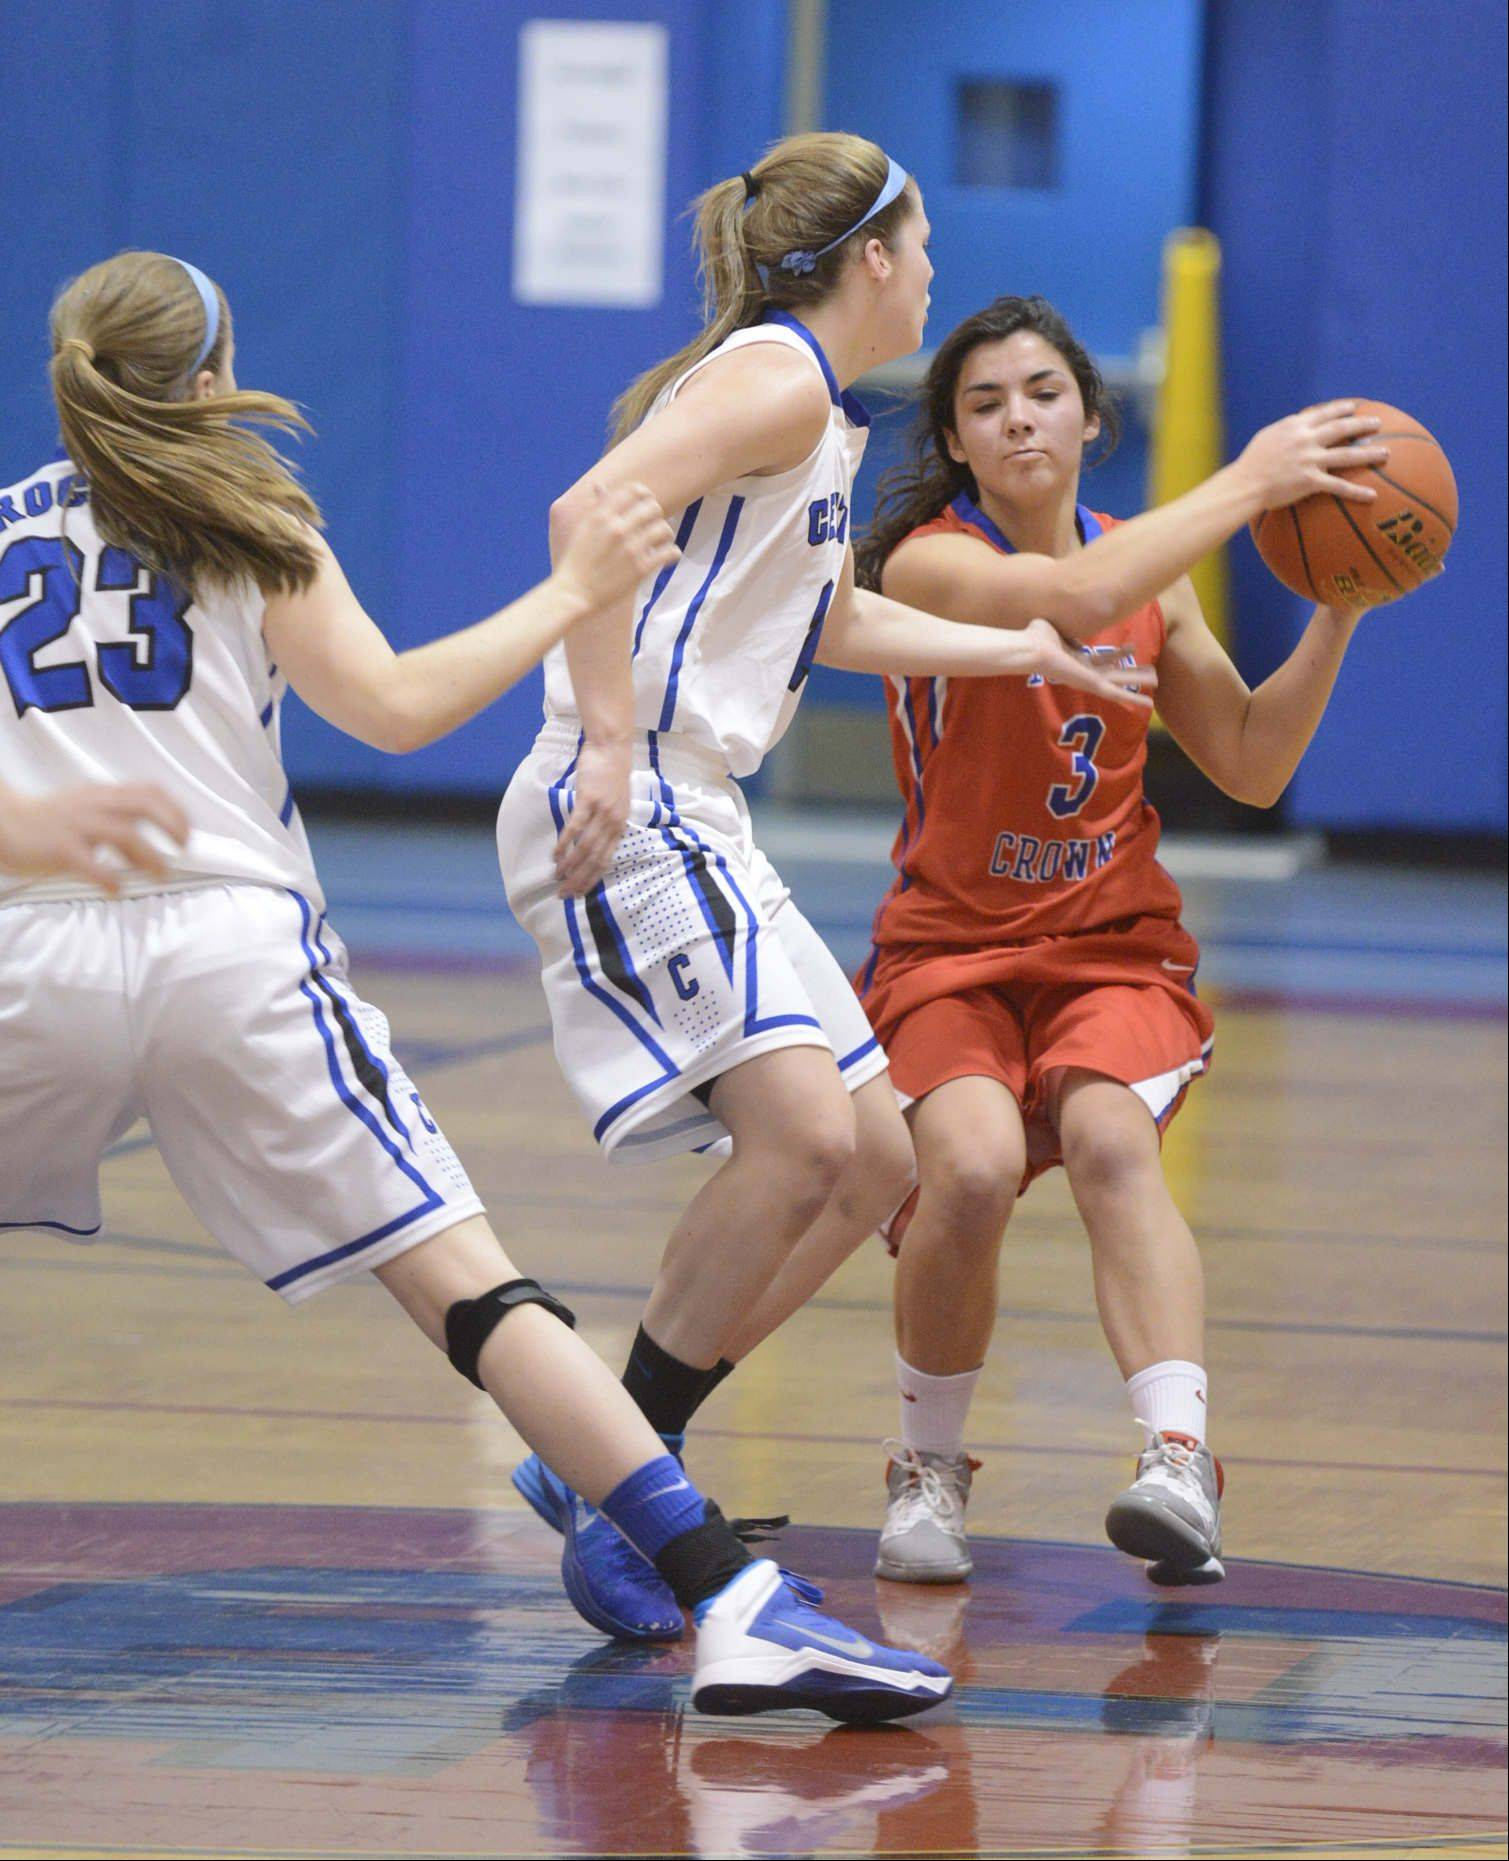 Images from the Dundee-Crown vs. Burlington Central girls basketball game Saturday, December 27, in Carpentersville.